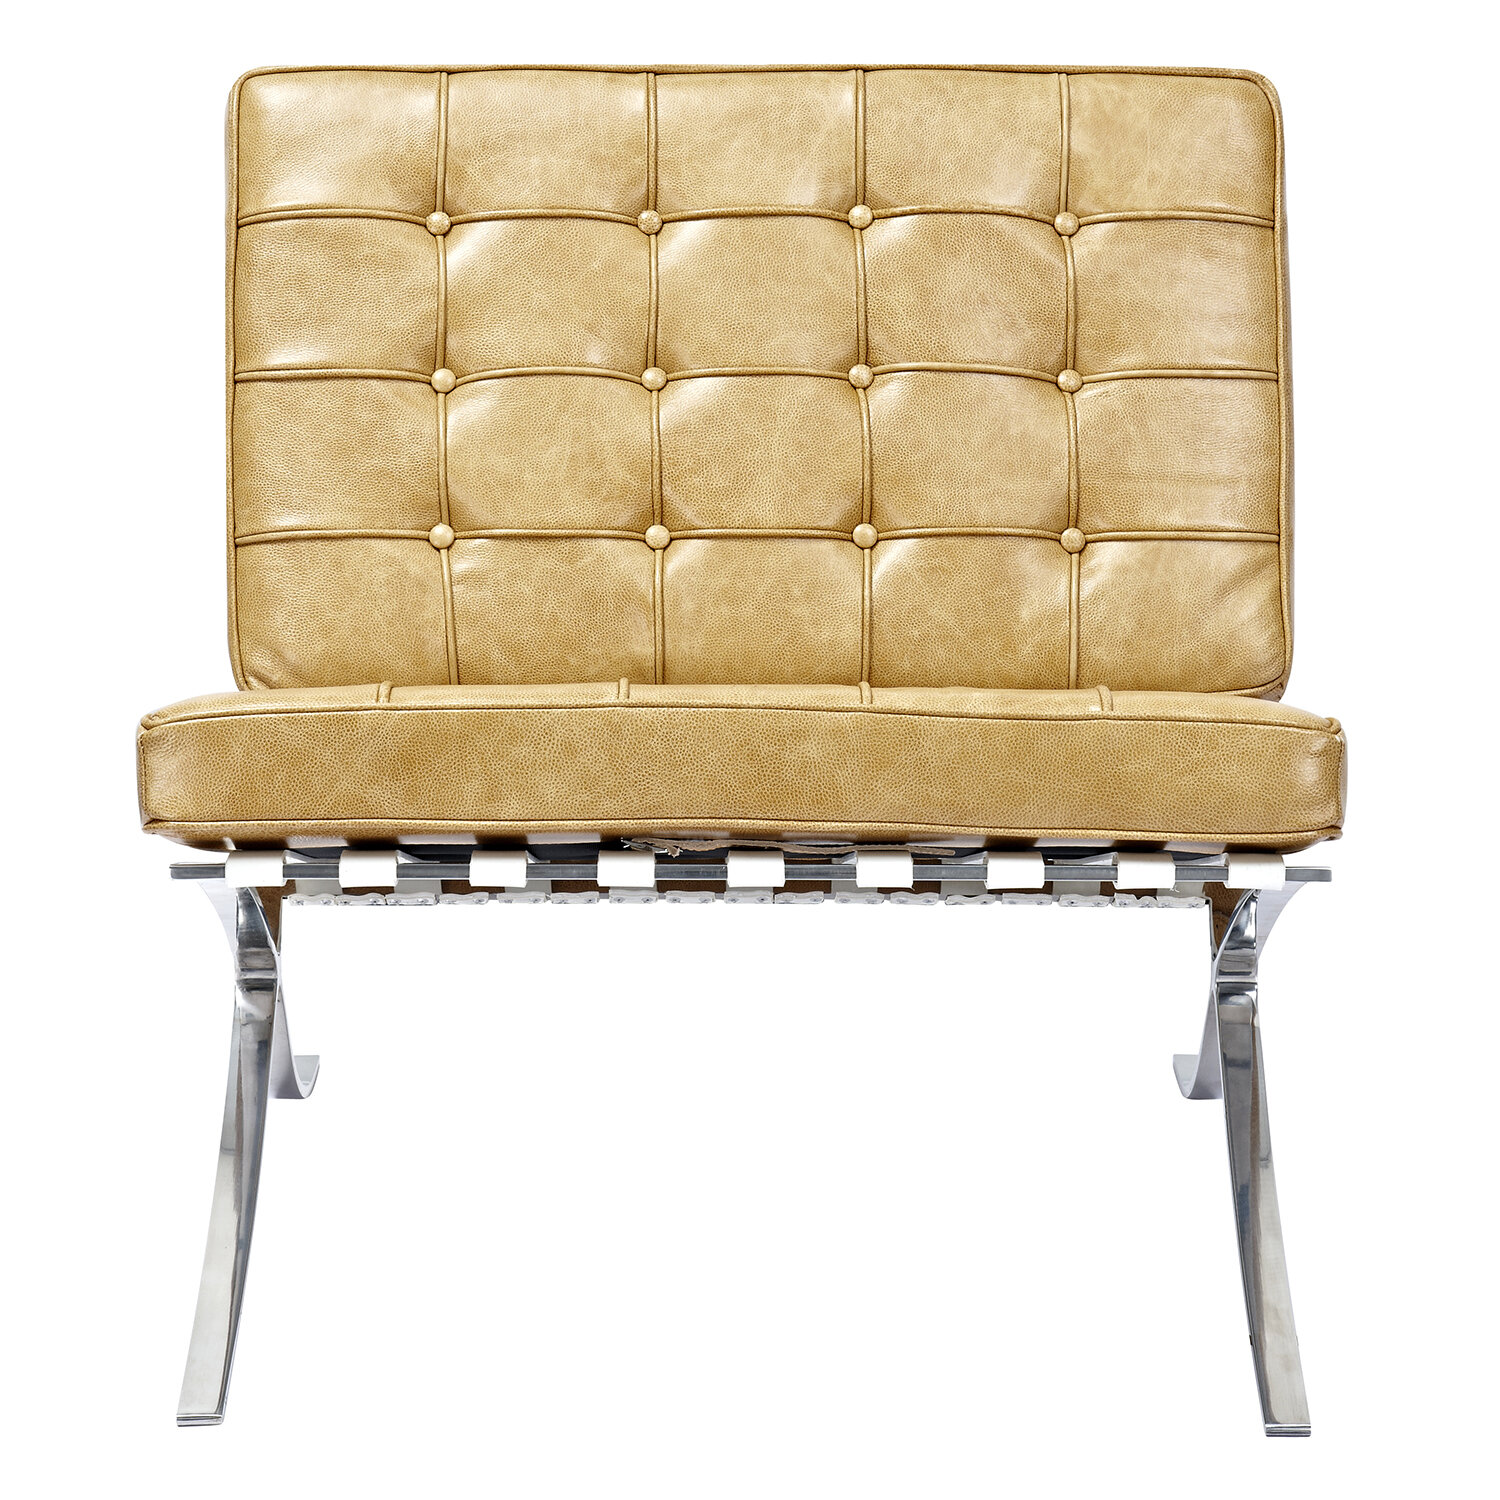 Superb Barca Lounge Chair Caraccident5 Cool Chair Designs And Ideas Caraccident5Info